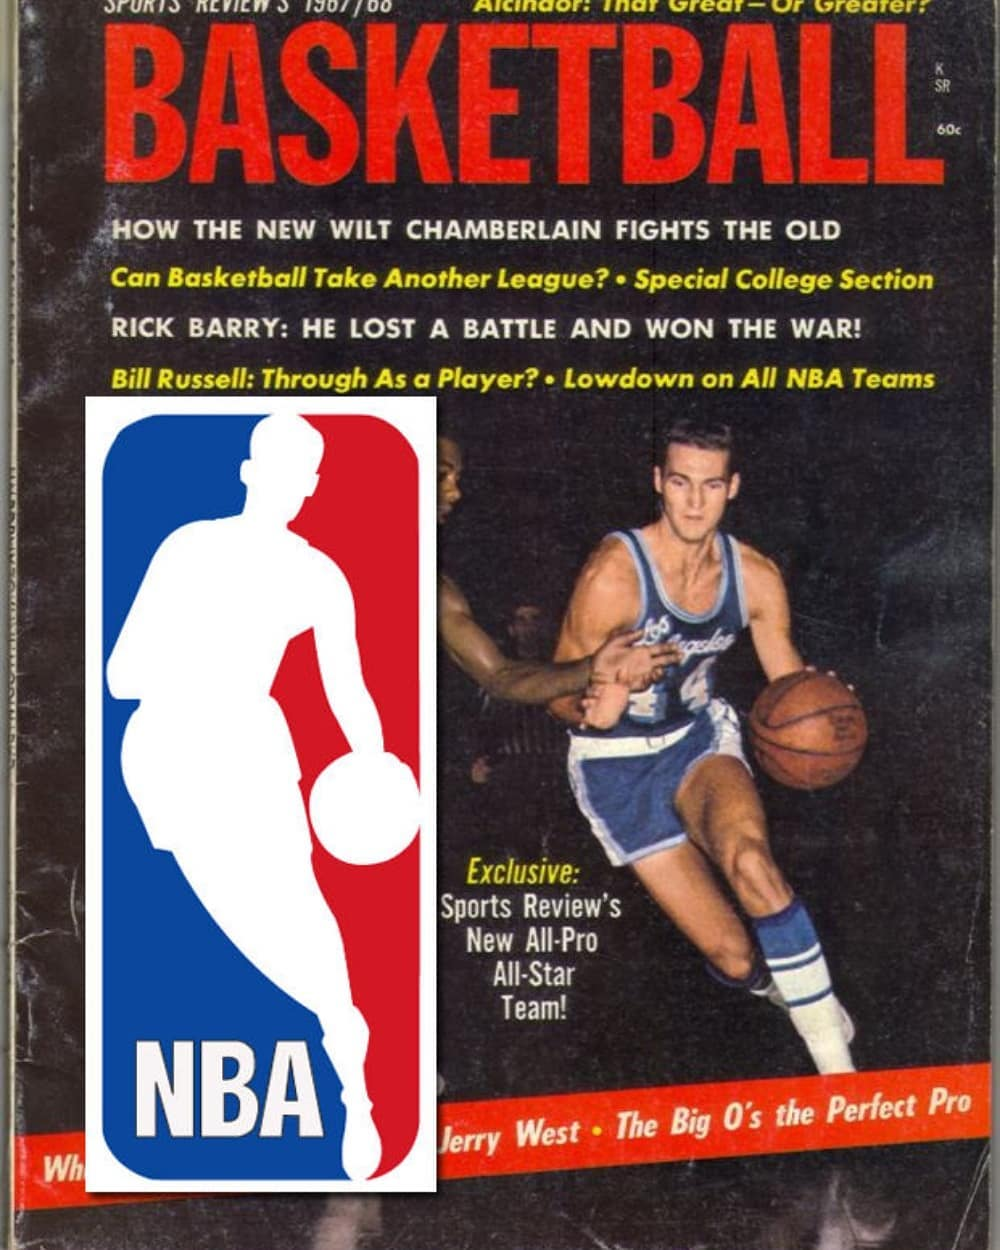 It's Always About Jerry West, But It's Not What Everyone Knows! The Story Behind the Photo That Inspired the NBA Logo!